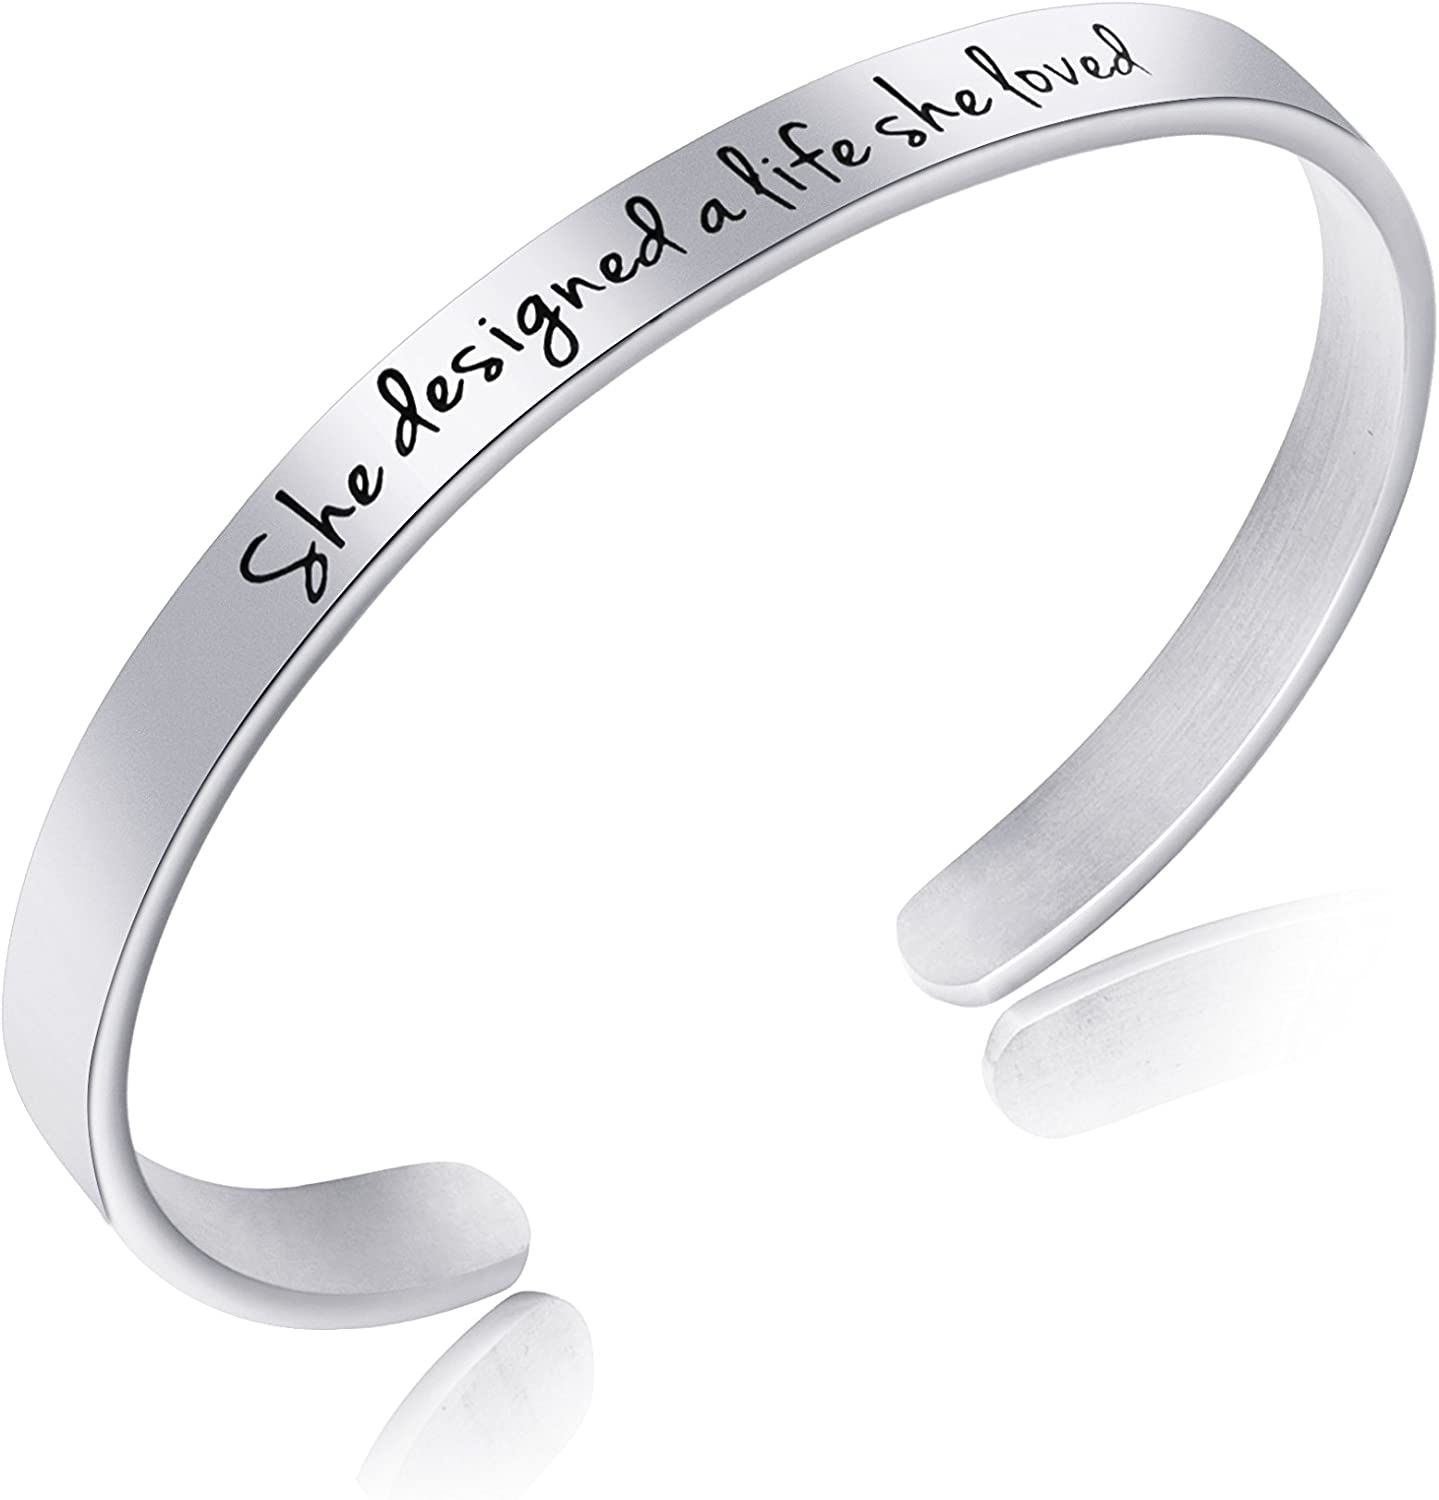 Inspirational Bracelet for Women Motivational Mantra Cuff Jewelry Stainless Steel Birthday Graduation Gifts